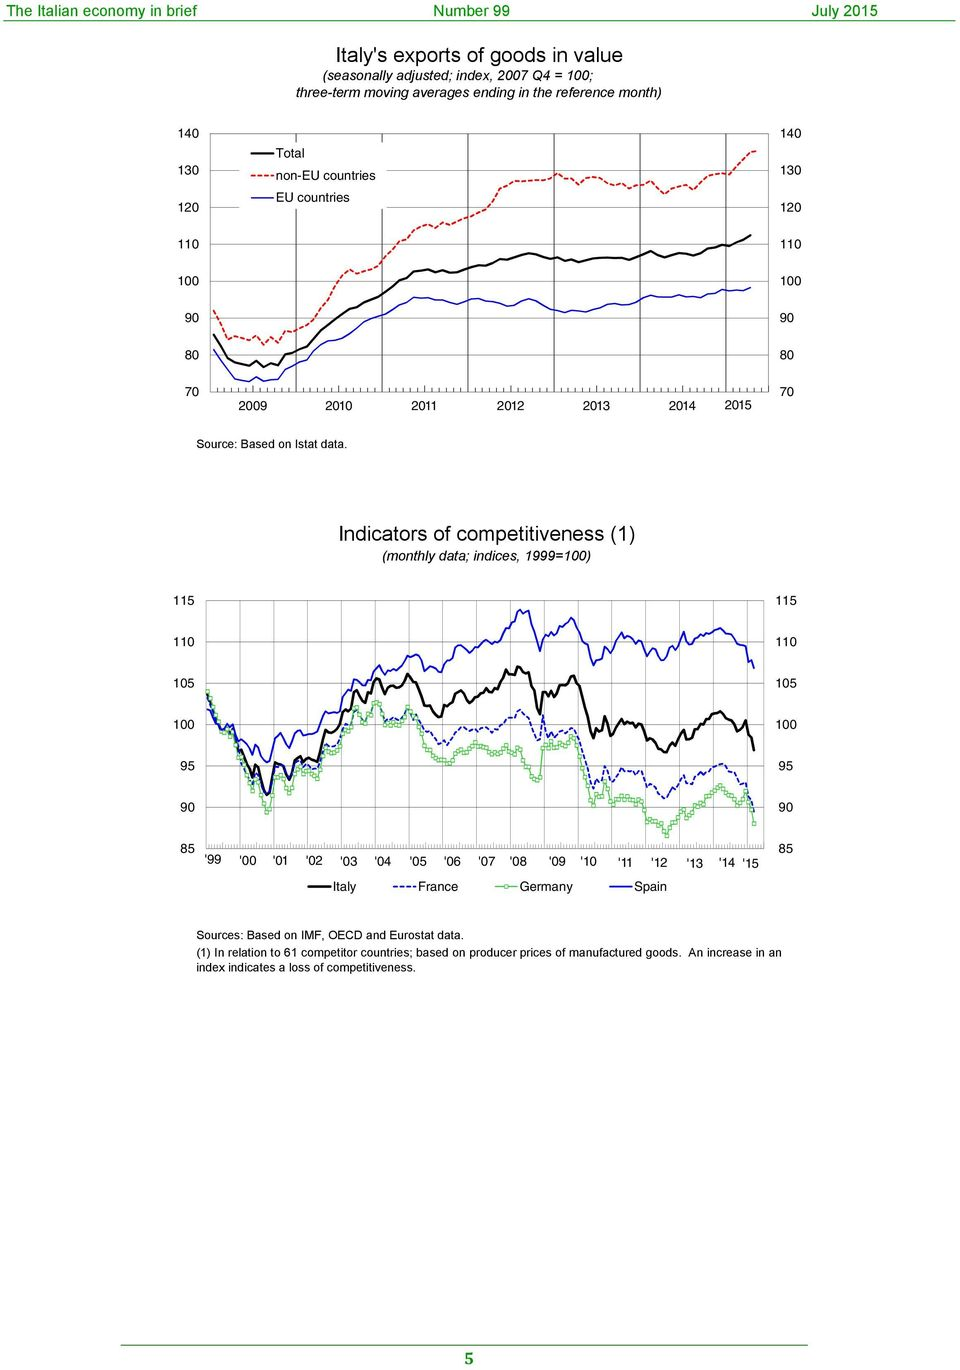 Indicators of competitiveness (1) (monthly data; indices, 1999=1) 11 11 11 11 1 1 1 1 9 9 9 9 8 '99 ' '1 '2 ' '4 ' '6 '7 '8 '9 '1 '11 '12 '1 '14 '1 Italy France Germany